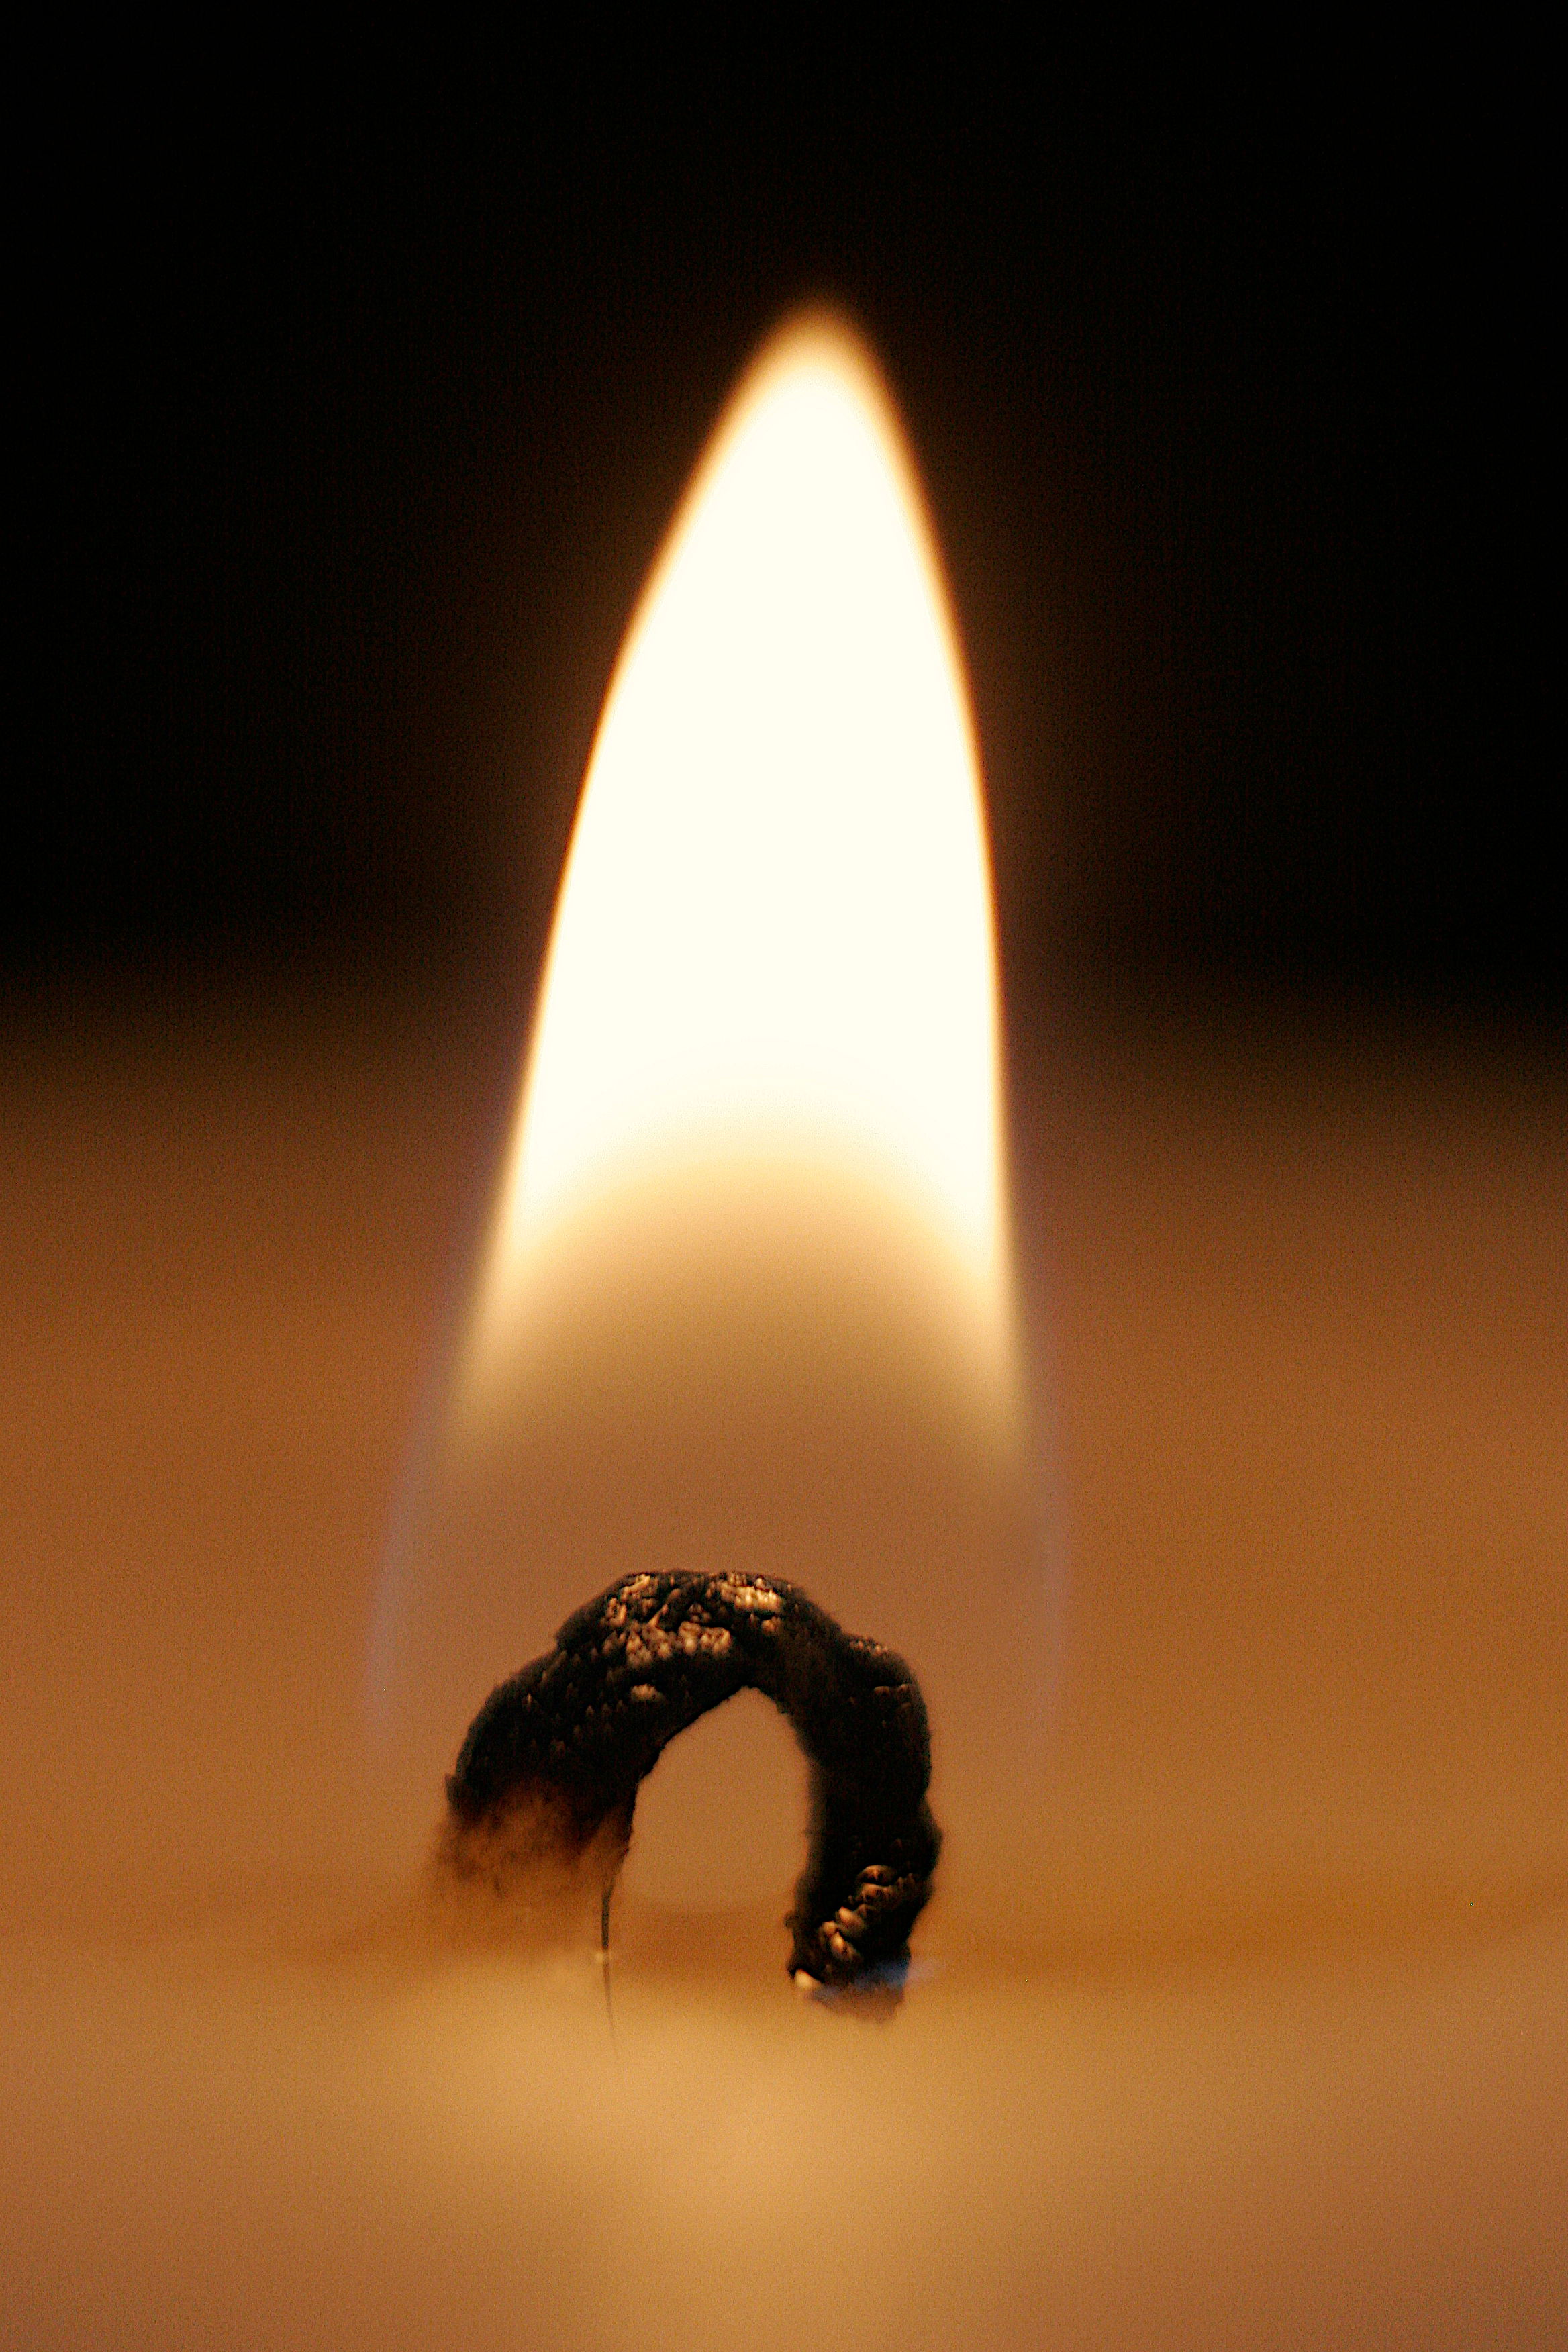 ITAP of a burning candleget your own photography kit now photography burning  photography kit